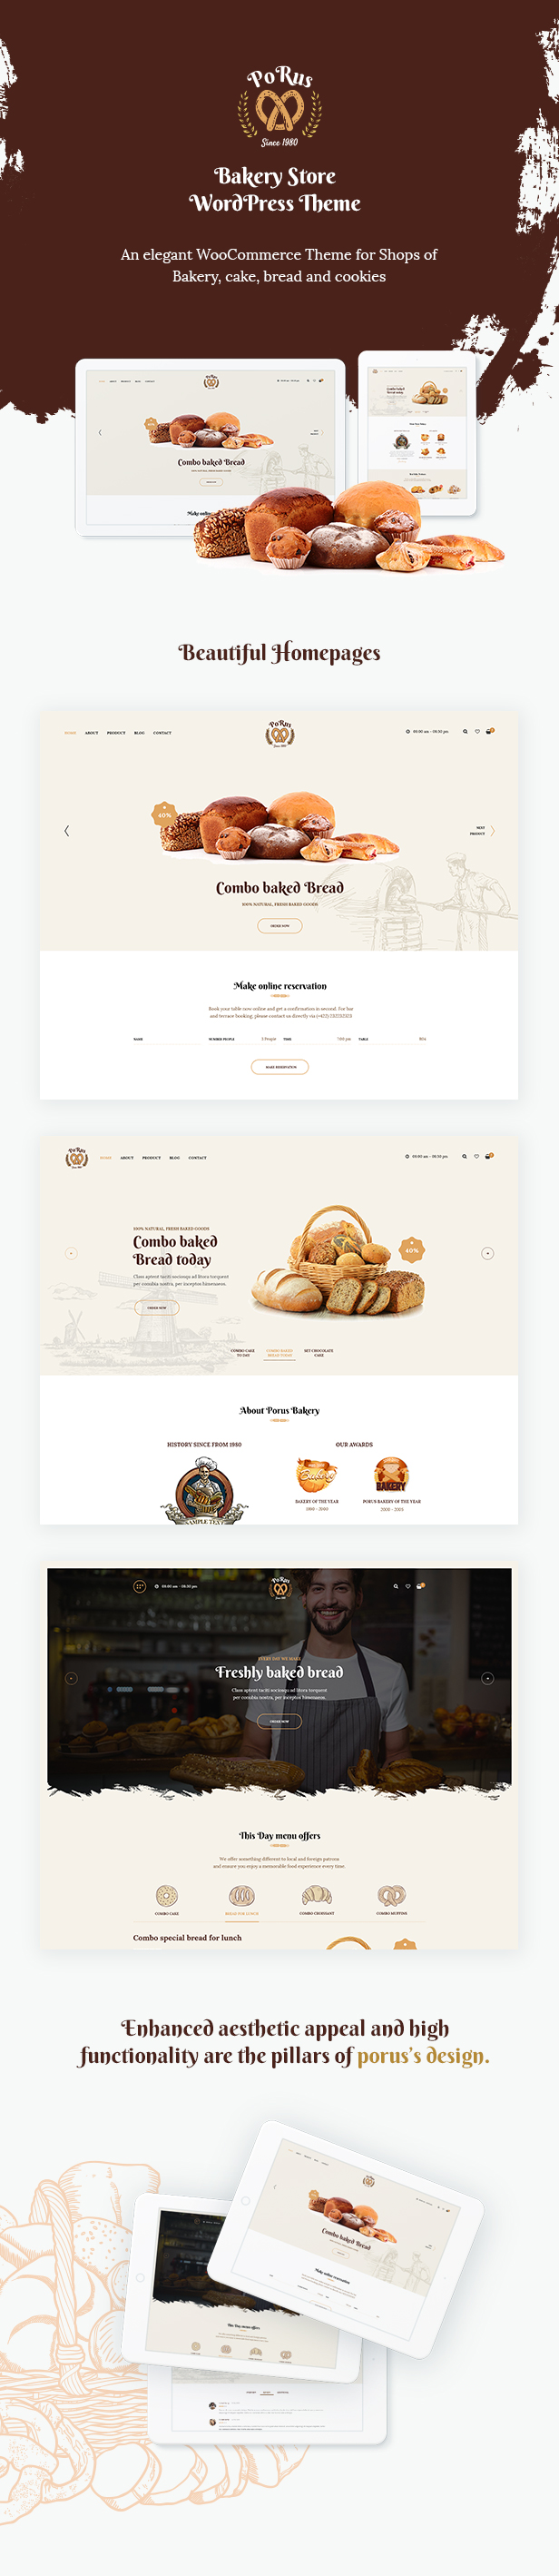 Porus - Bakery Store WordPress Theme - 9